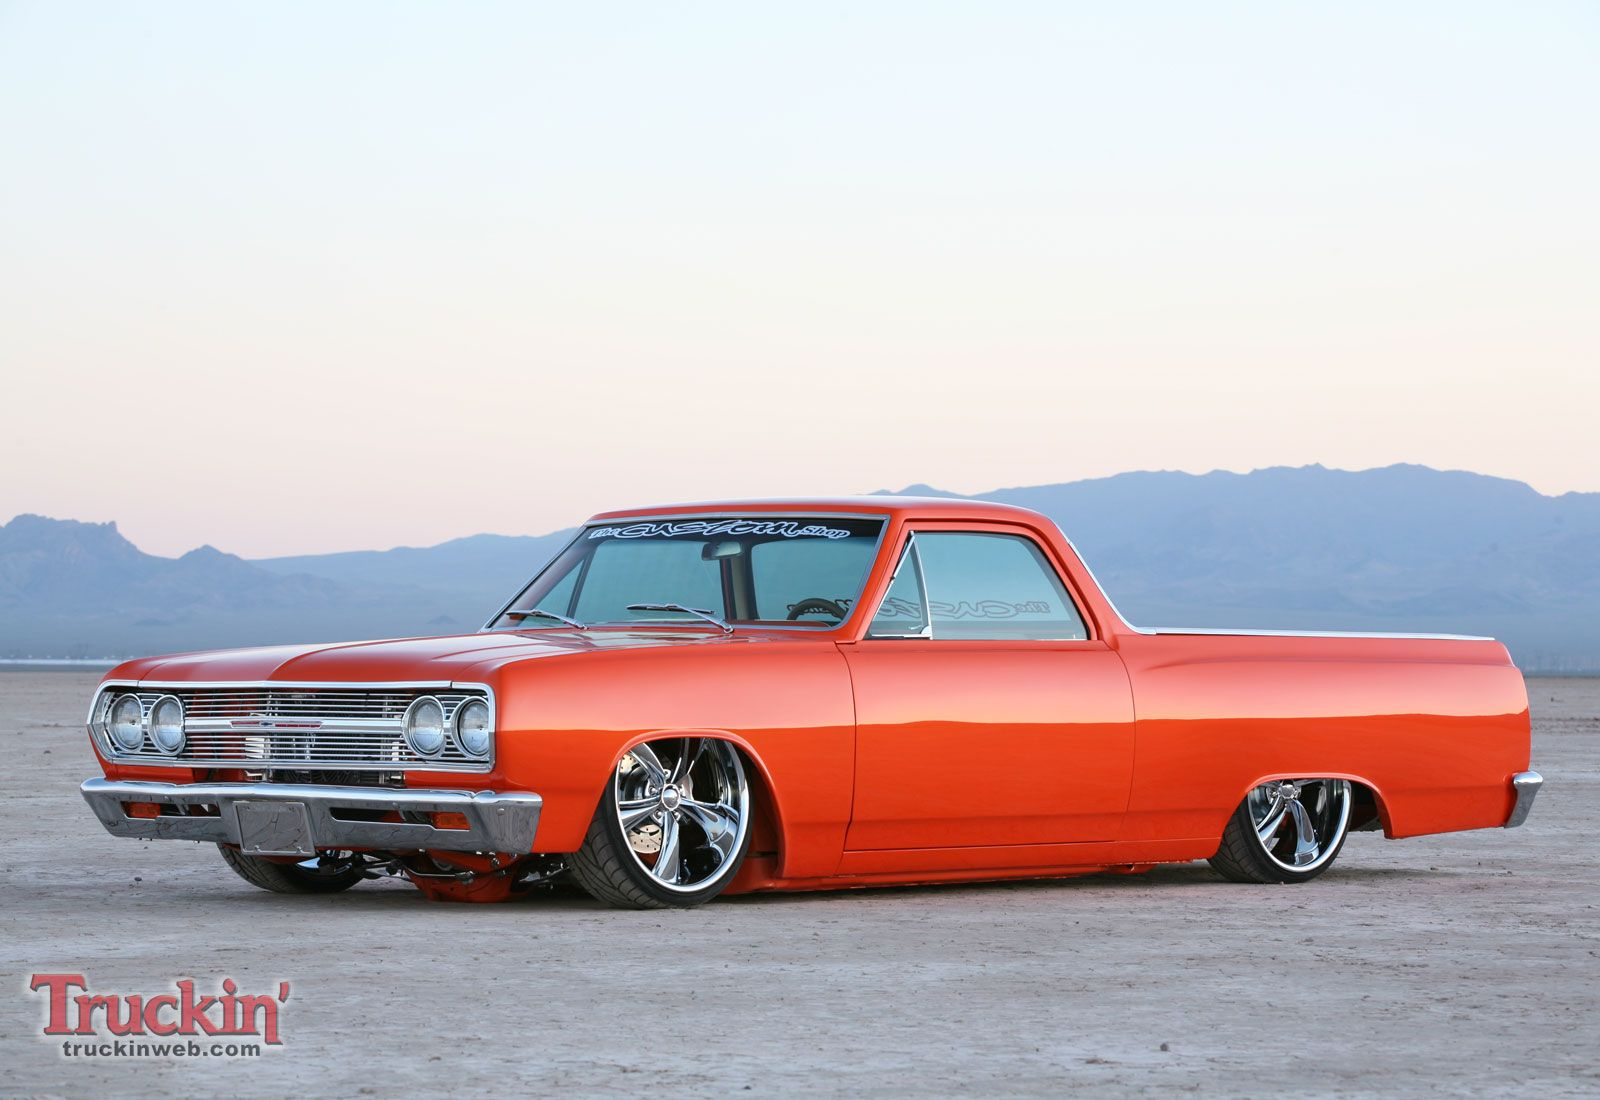 1965 chevy truck | Top 10 Trucks Of 2010 1965 Chevy El Camino | El ...